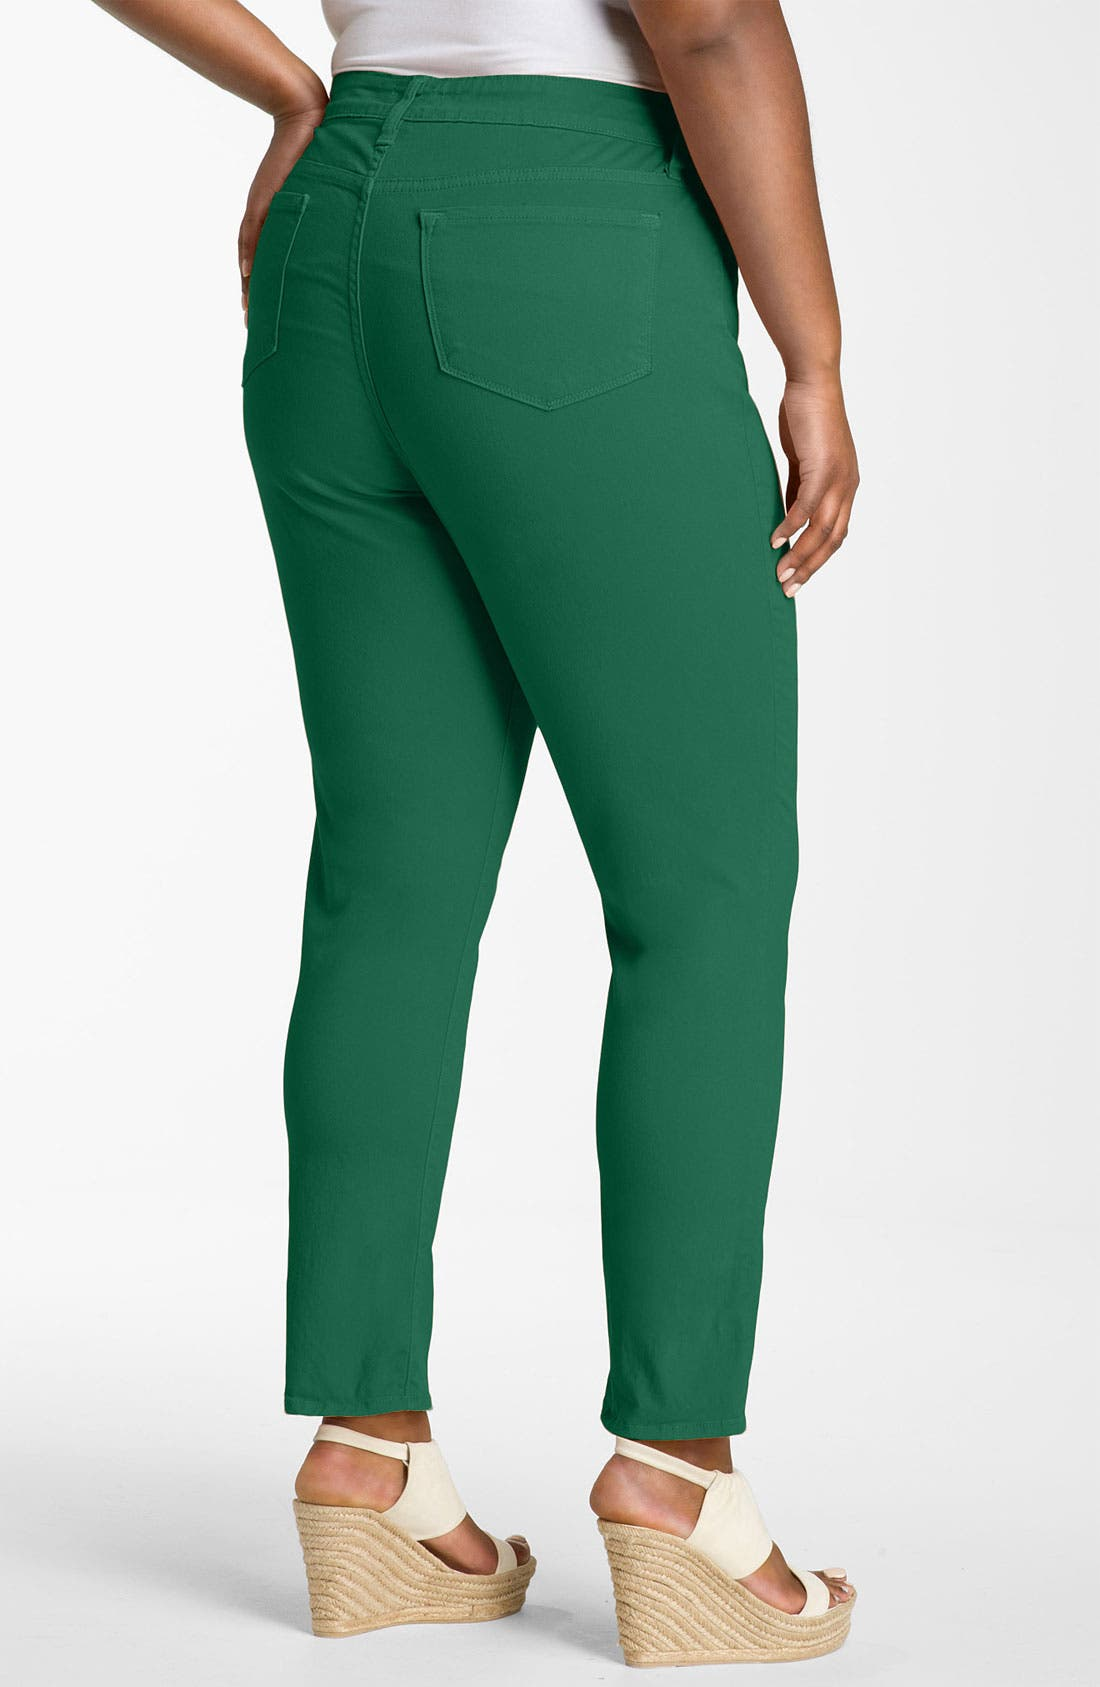 Colored Twill Skinny Jeans,                         Main,                         color, Kelly